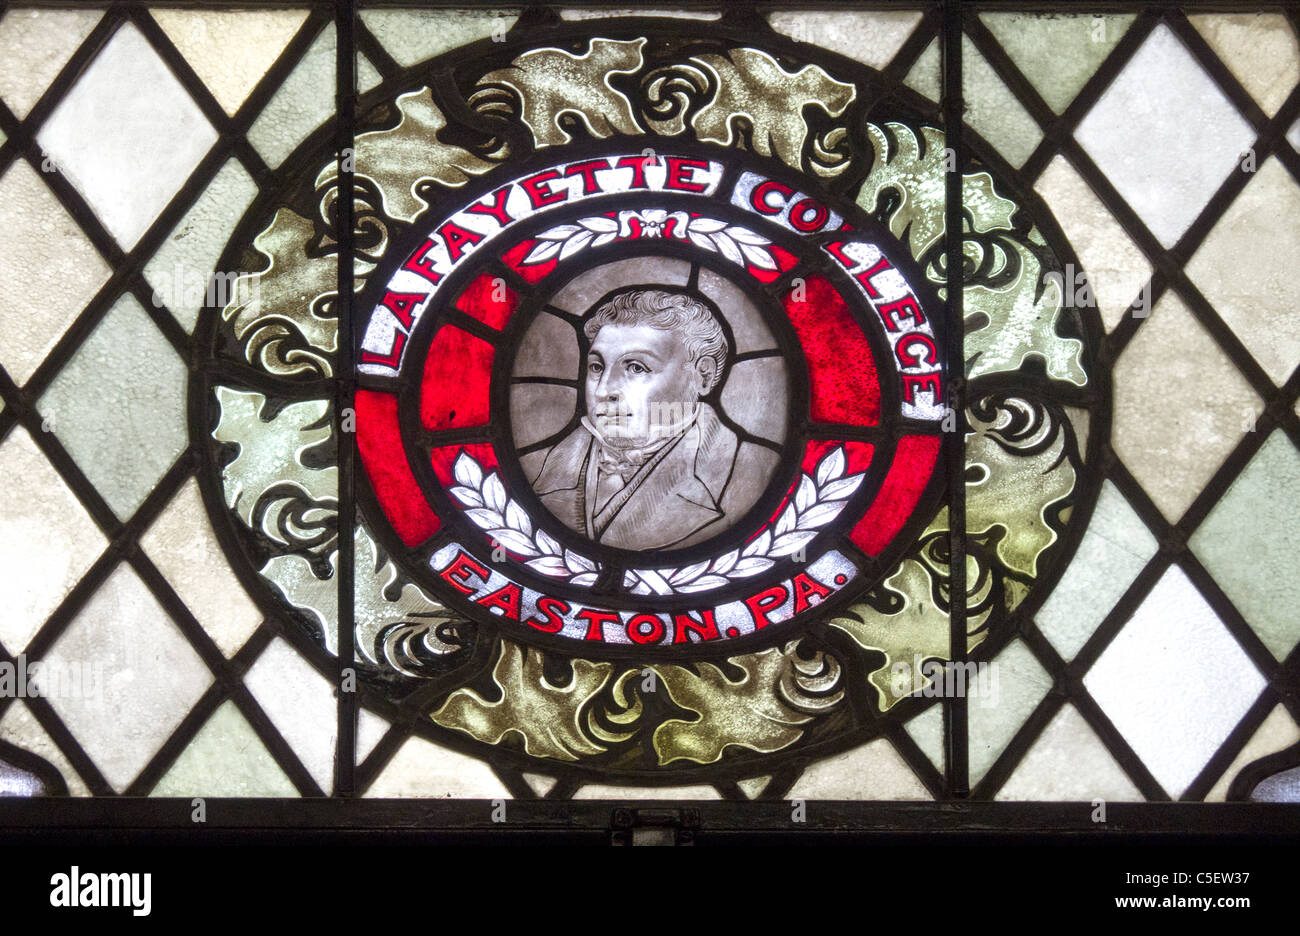 Lafayette College stained glass window - Stock Image